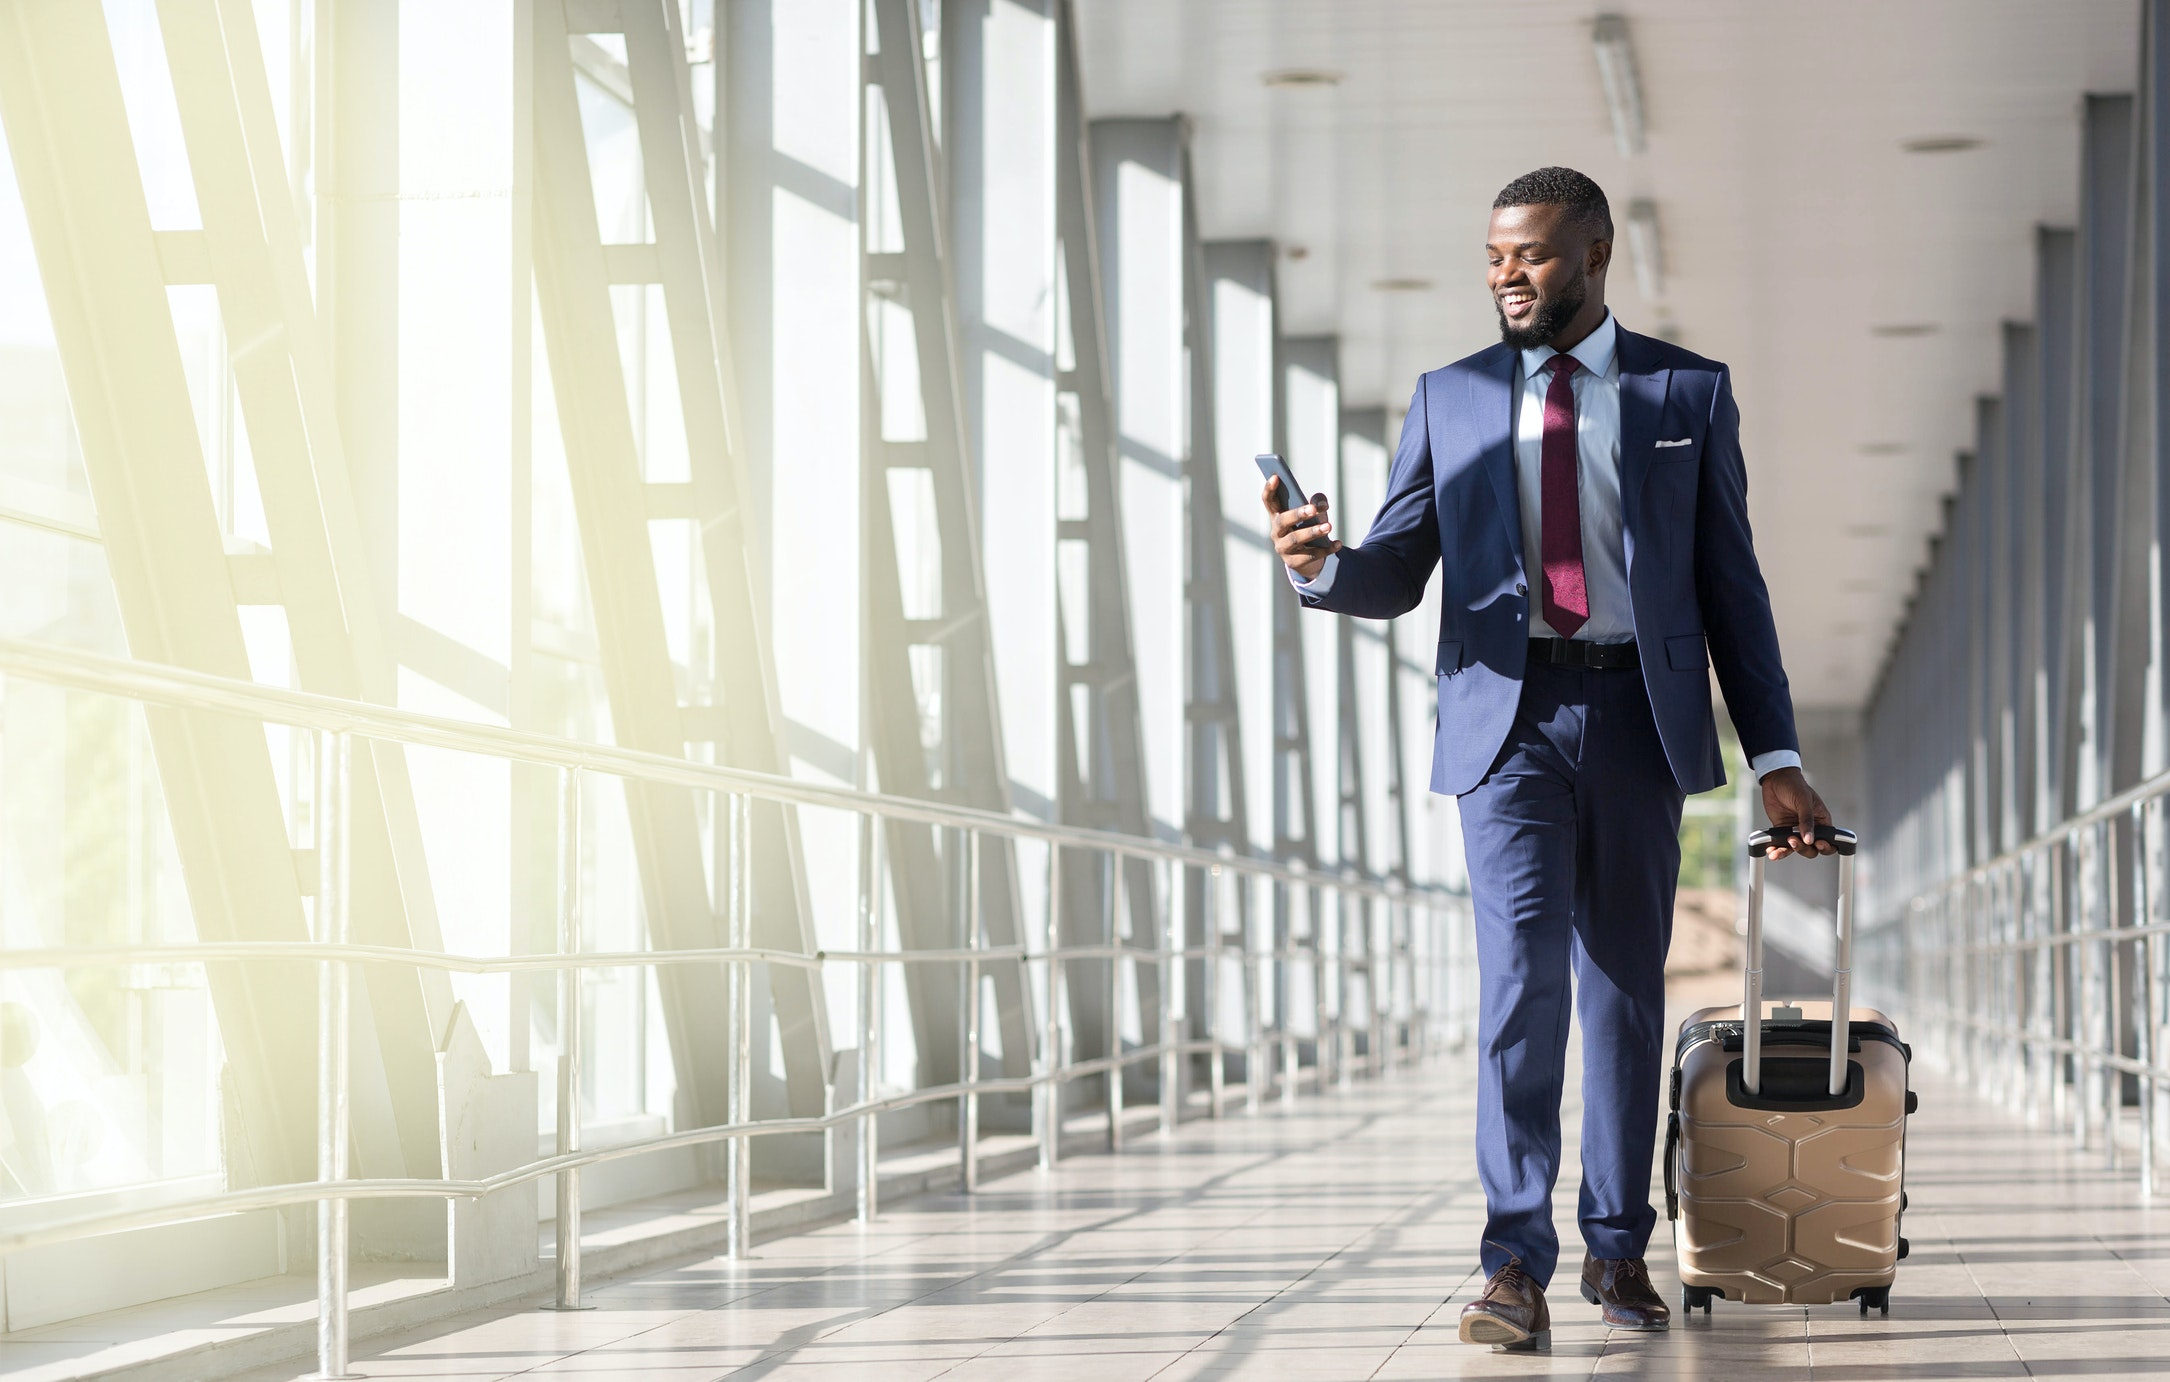 Top Three Benefits of Bundling Best-in-Breed Travel and Expense Technologies